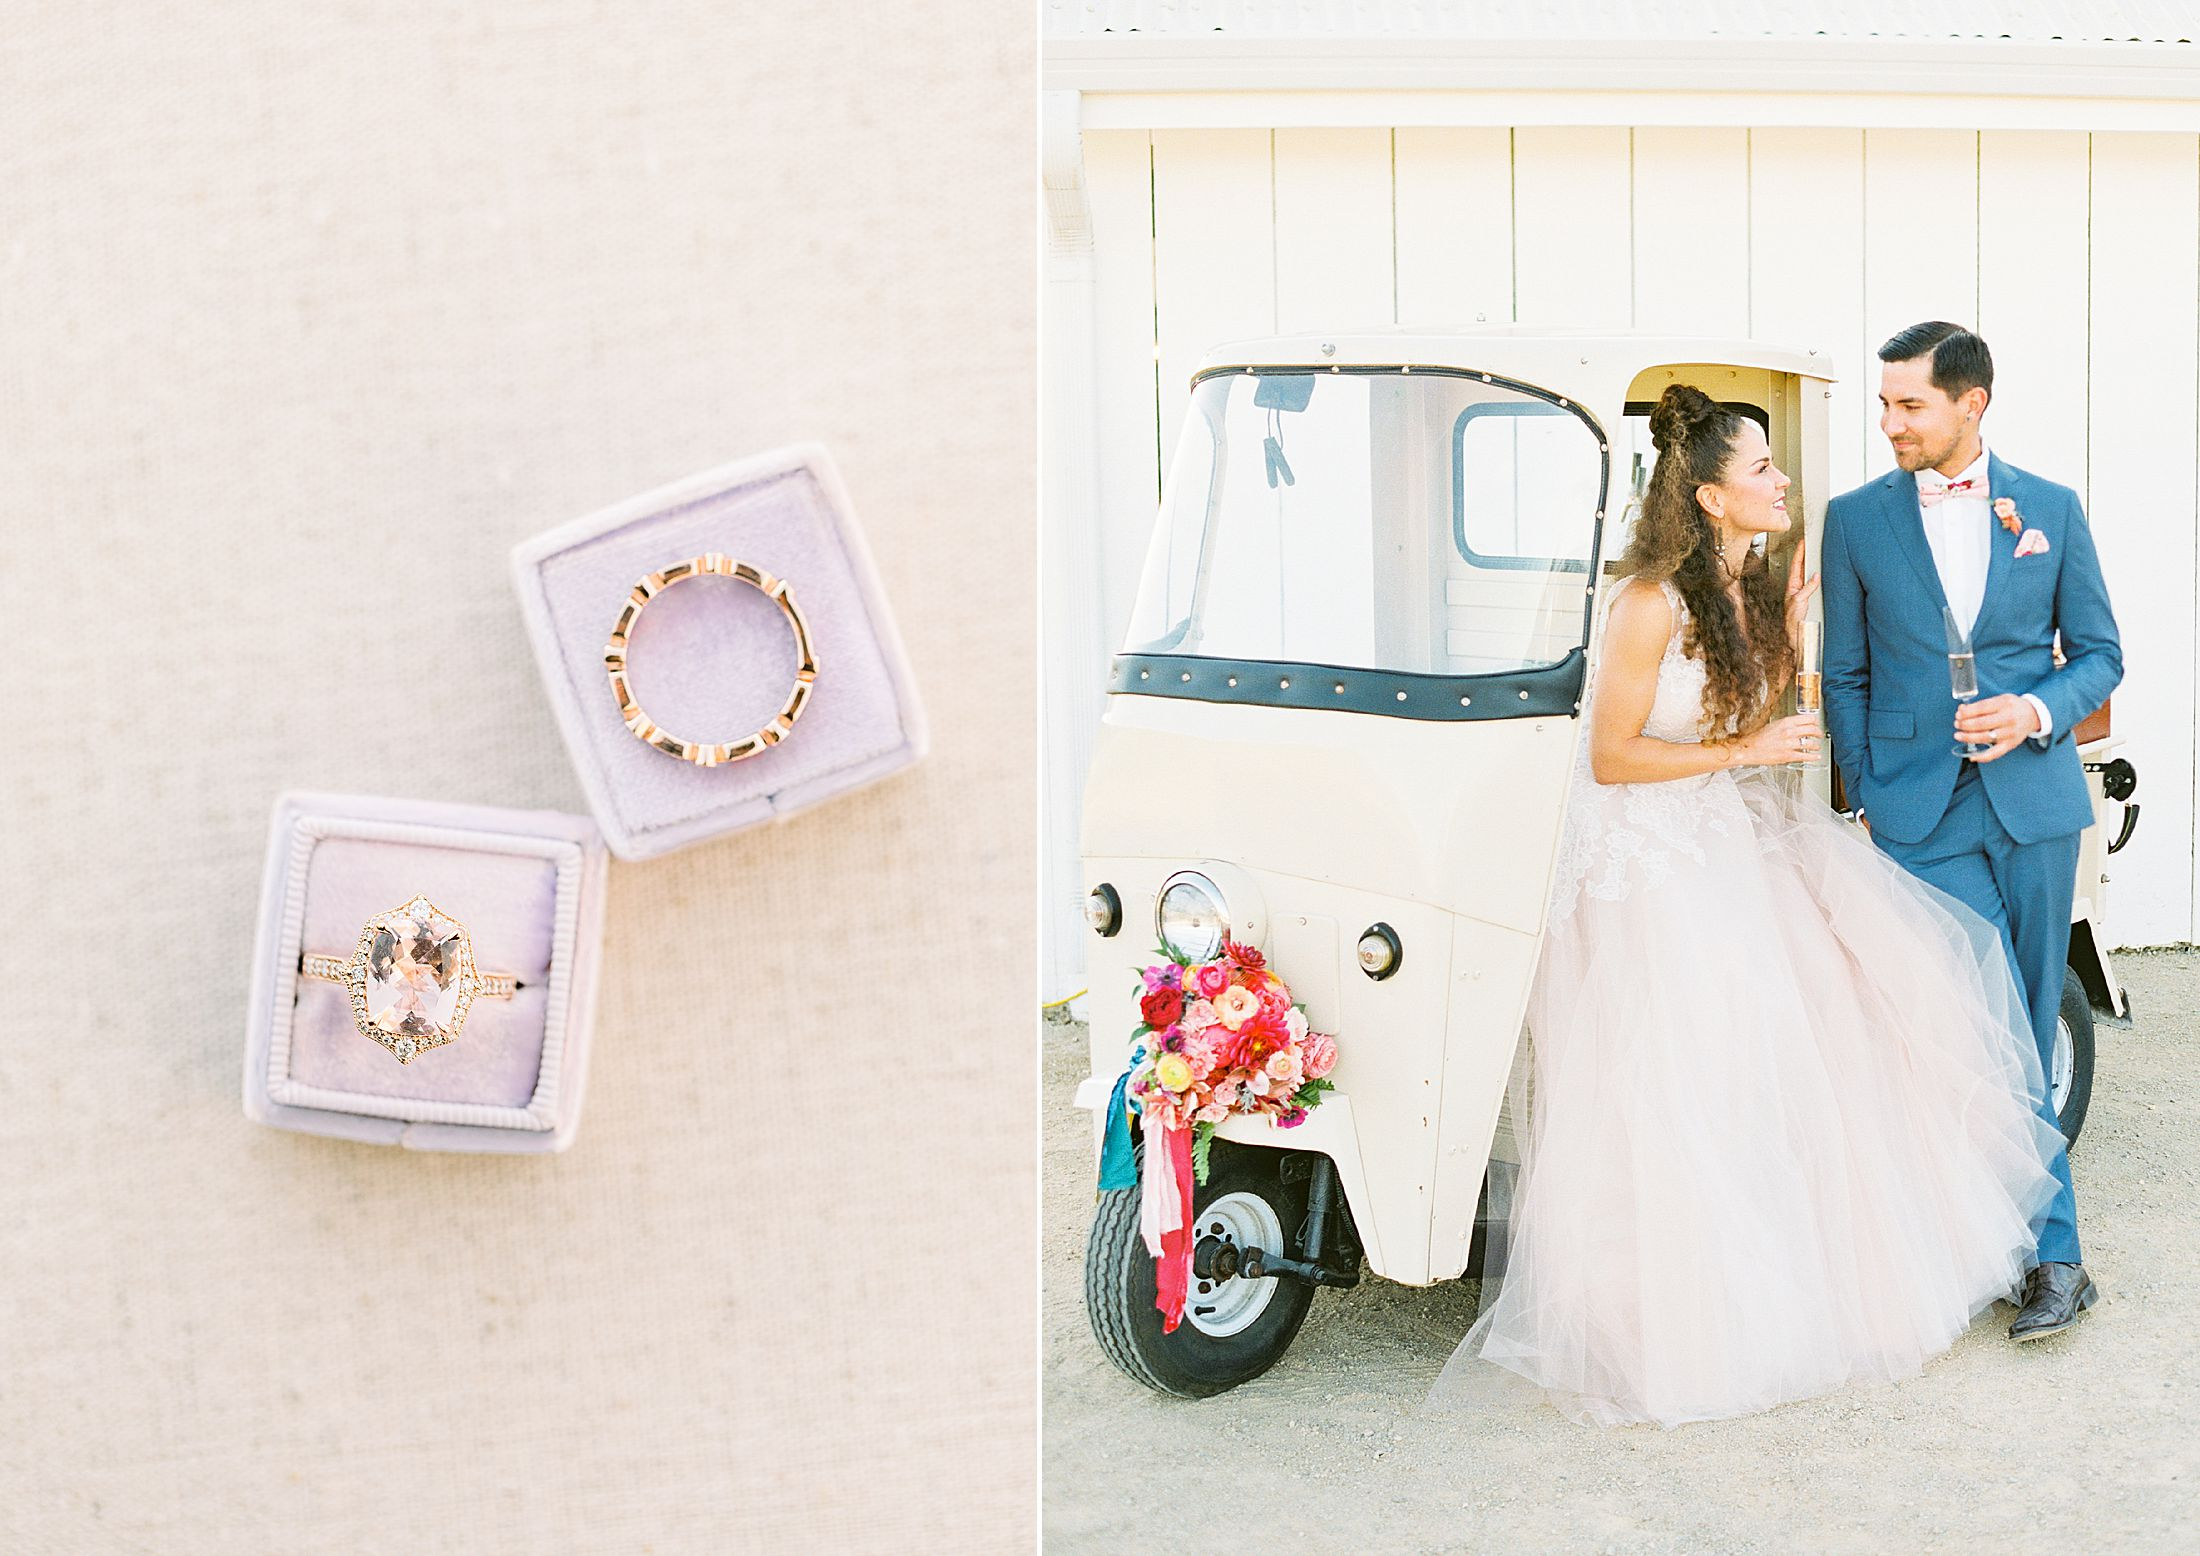 White Barn Edna Valley Wedding Inspiration - San Luis Obispo Wedding - Featured on Green Wedding Shoes - Ashley Baumgartner - FM Events SLO - SLO Wedding Photographer_0025.jpg